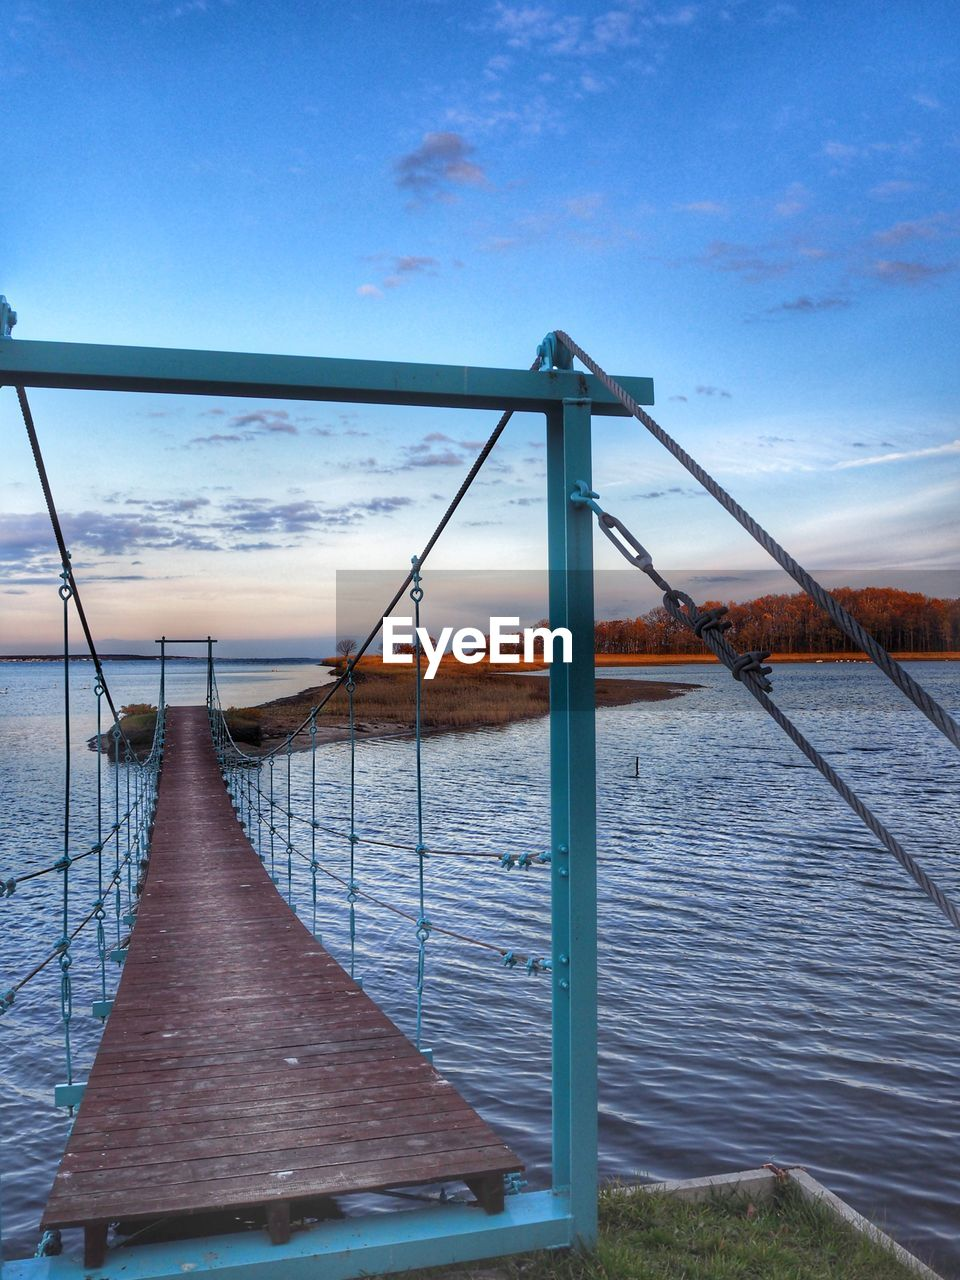 sky, water, cloud - sky, nature, no people, architecture, day, built structure, tranquility, tranquil scene, railing, beauty in nature, scenics - nature, metal, outdoors, connection, pier, sea, bridge